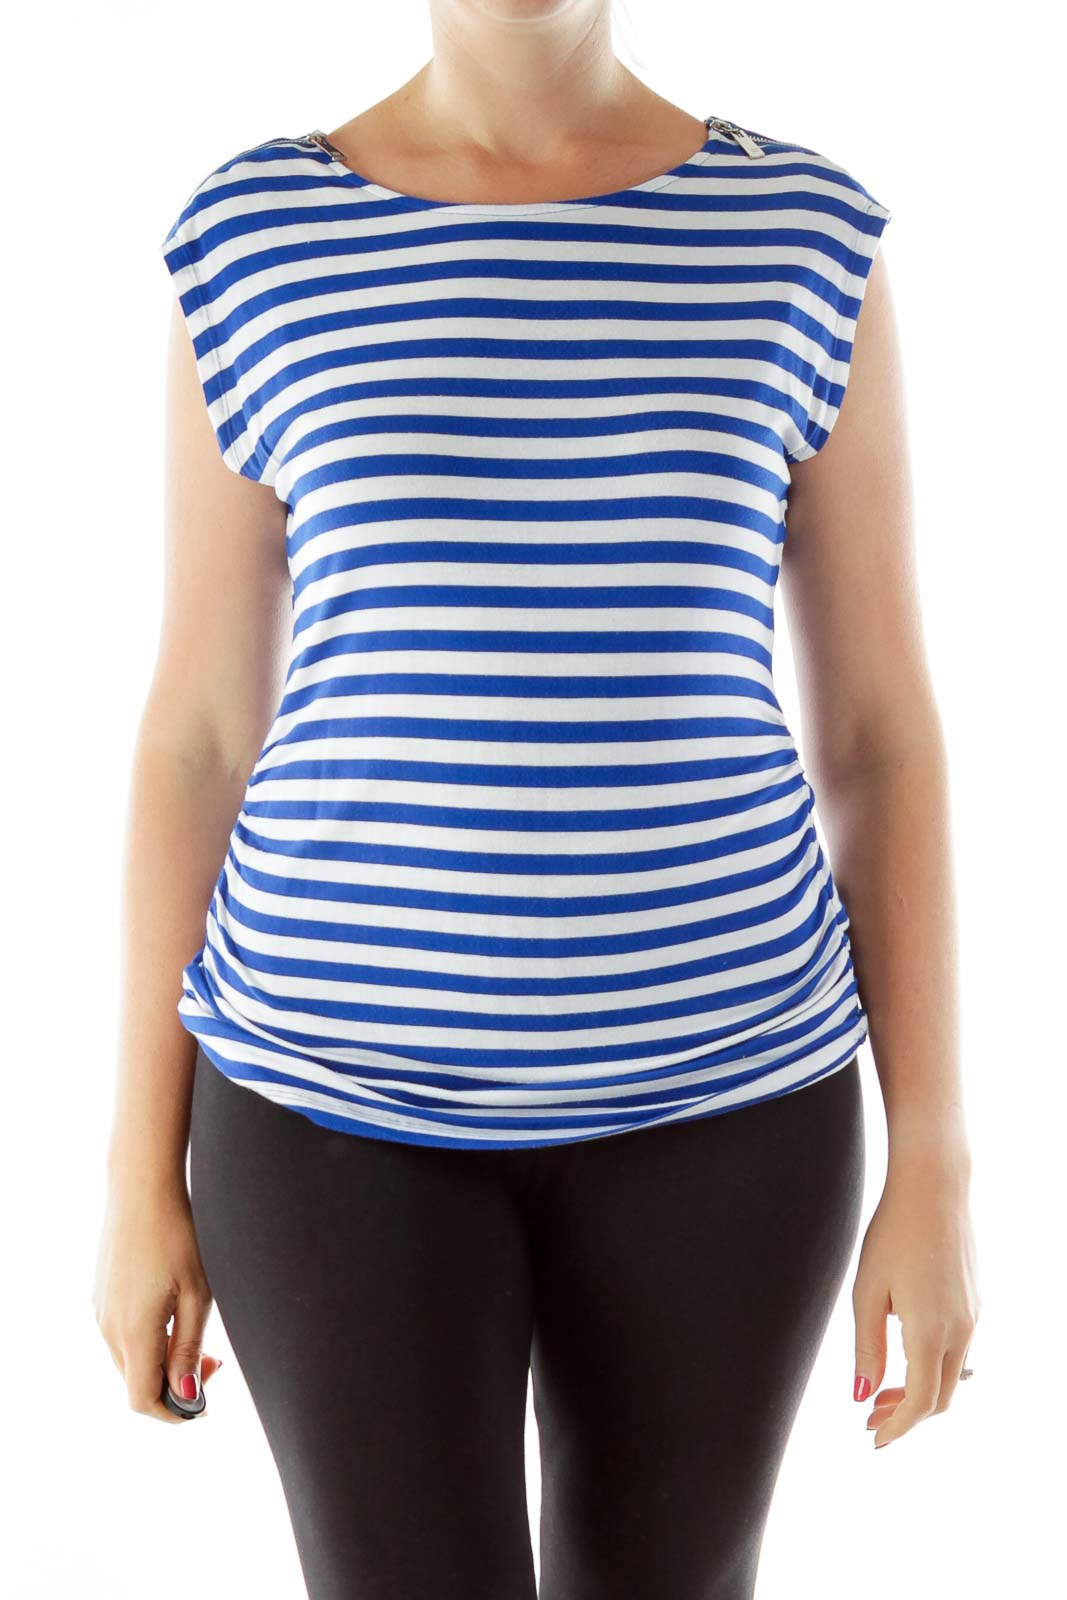 Blue White Striped Zipper Sleeve Top Front